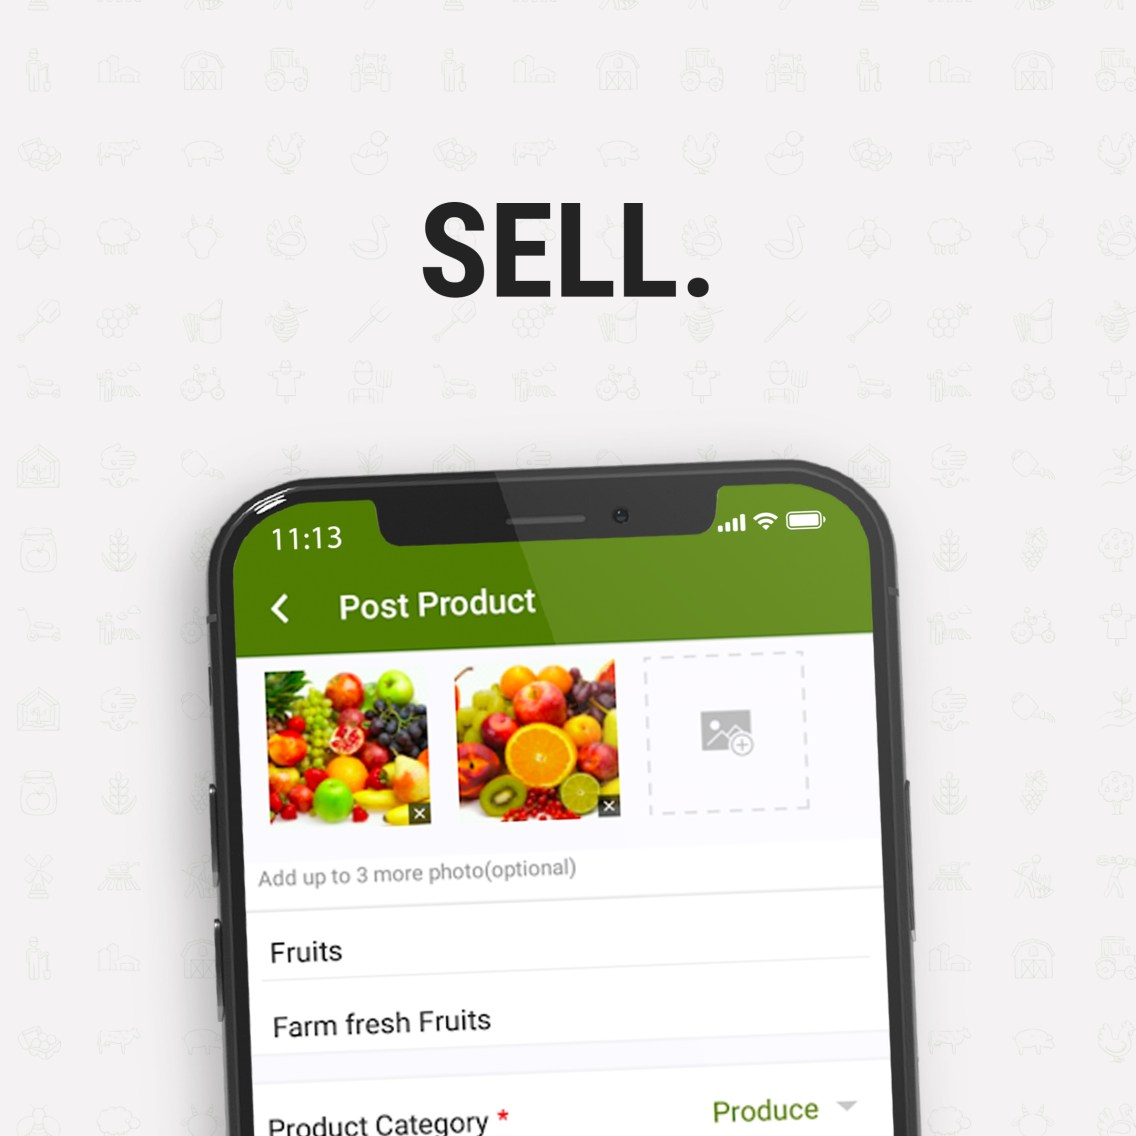 oogle app feature - sell